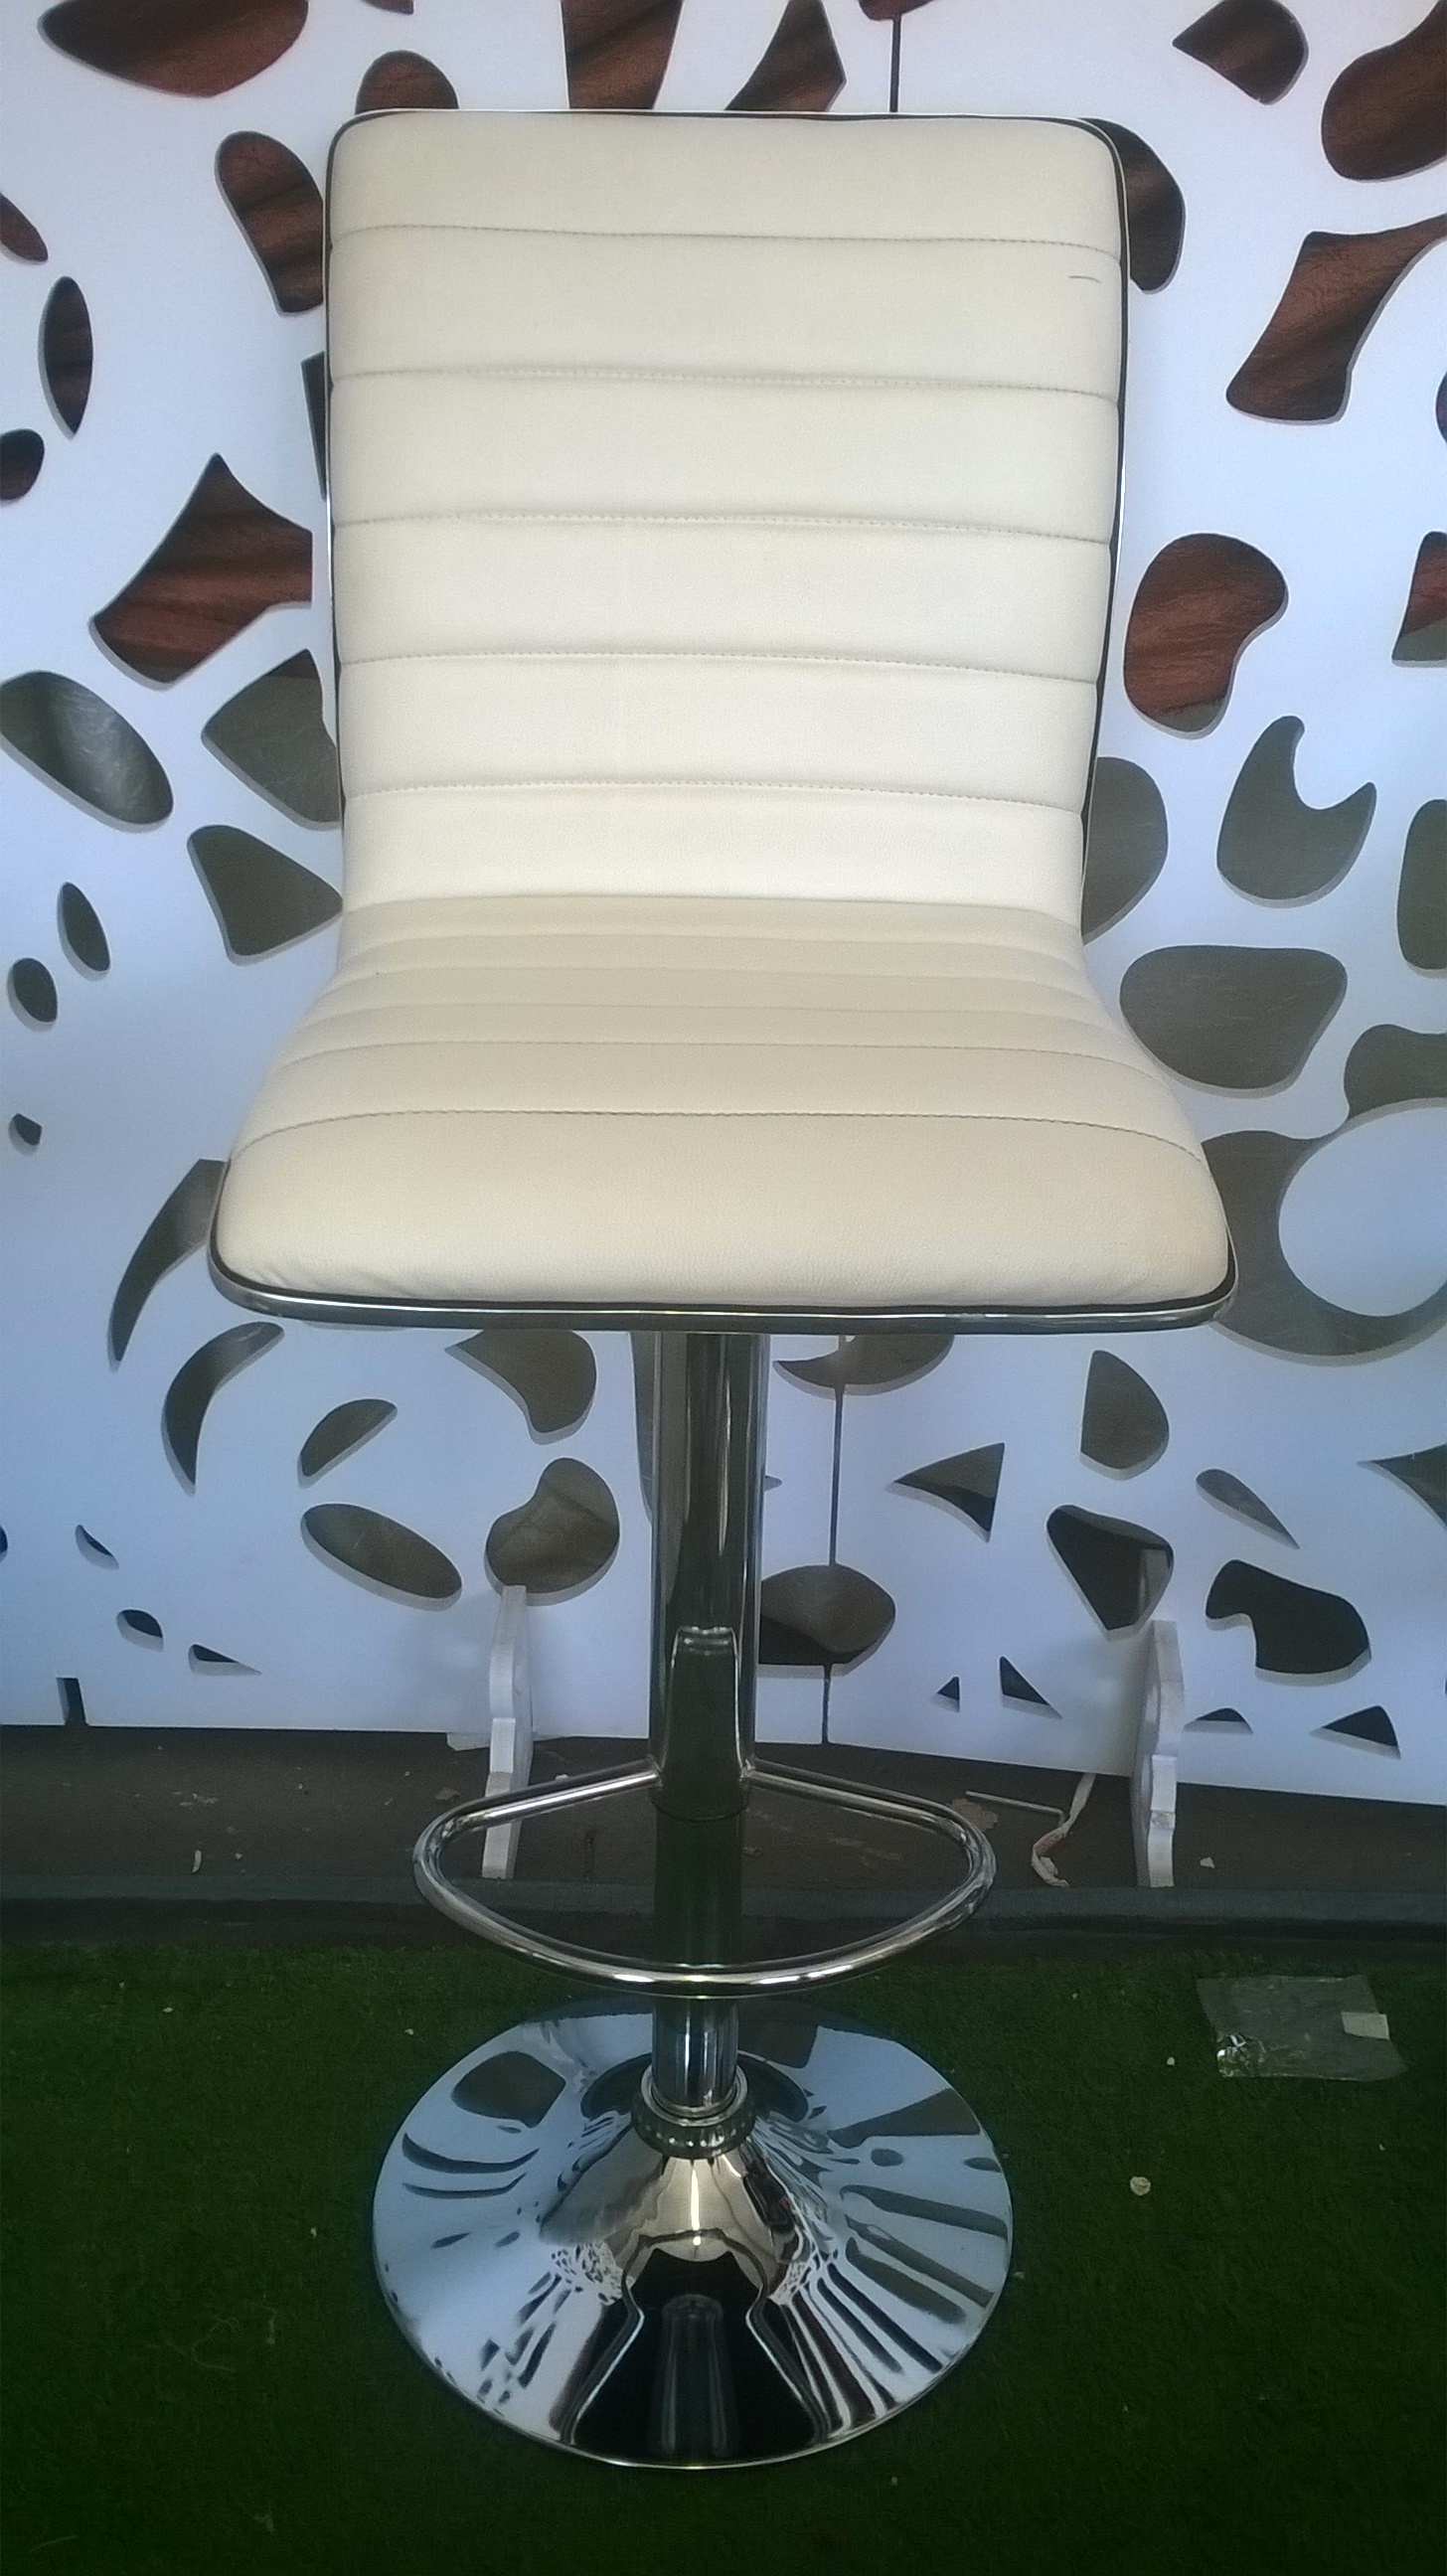 Bar Stools for sale at Wholesale prices.